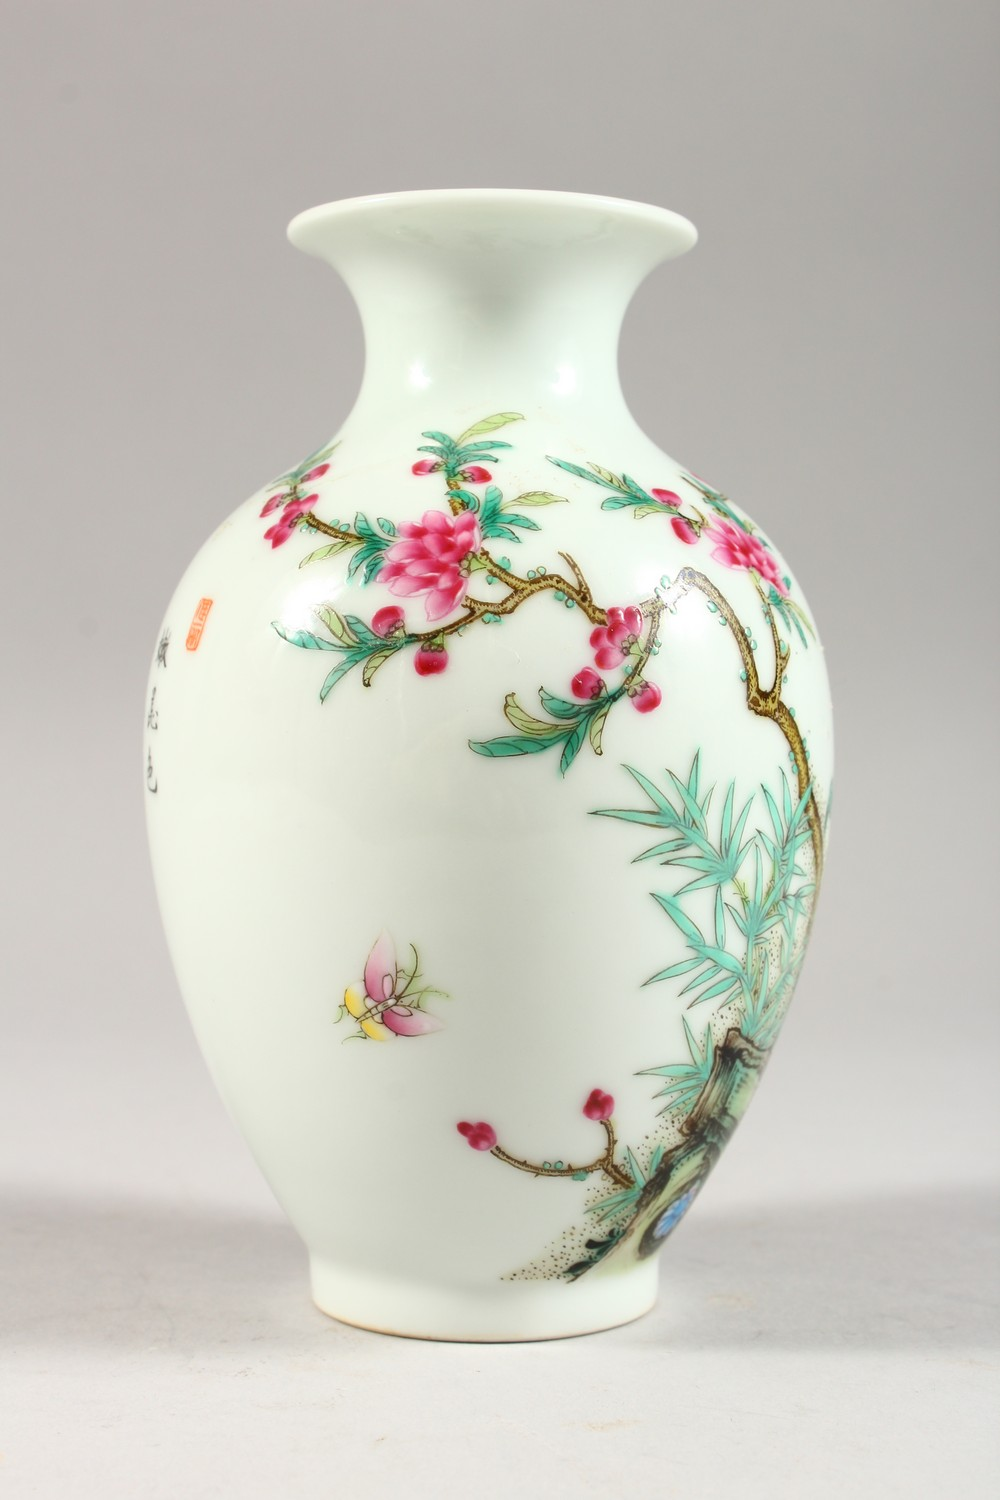 A GOOD CHINESE REPUBLIC STYLE FAMILLE ROSE PORCELAIN VASE, the body decorated with scenes of birds - Image 6 of 8